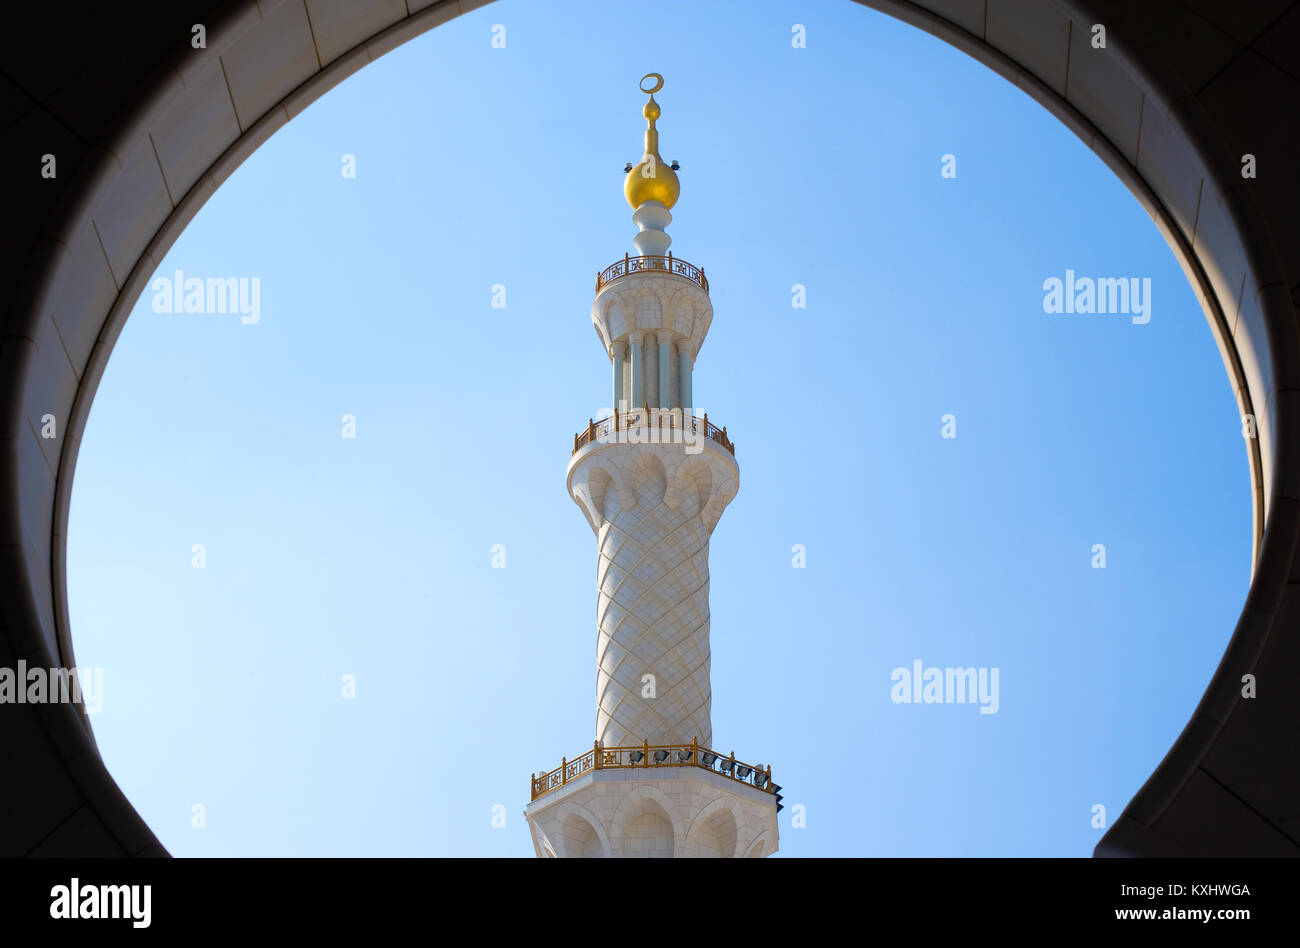 ABU DHABI, UNITED ARAB EMIRATES - DEC 28, 2017: Minaret on the roof from the Sheikh Zayed Mosque in Abu Dhabi. It - Stock Image